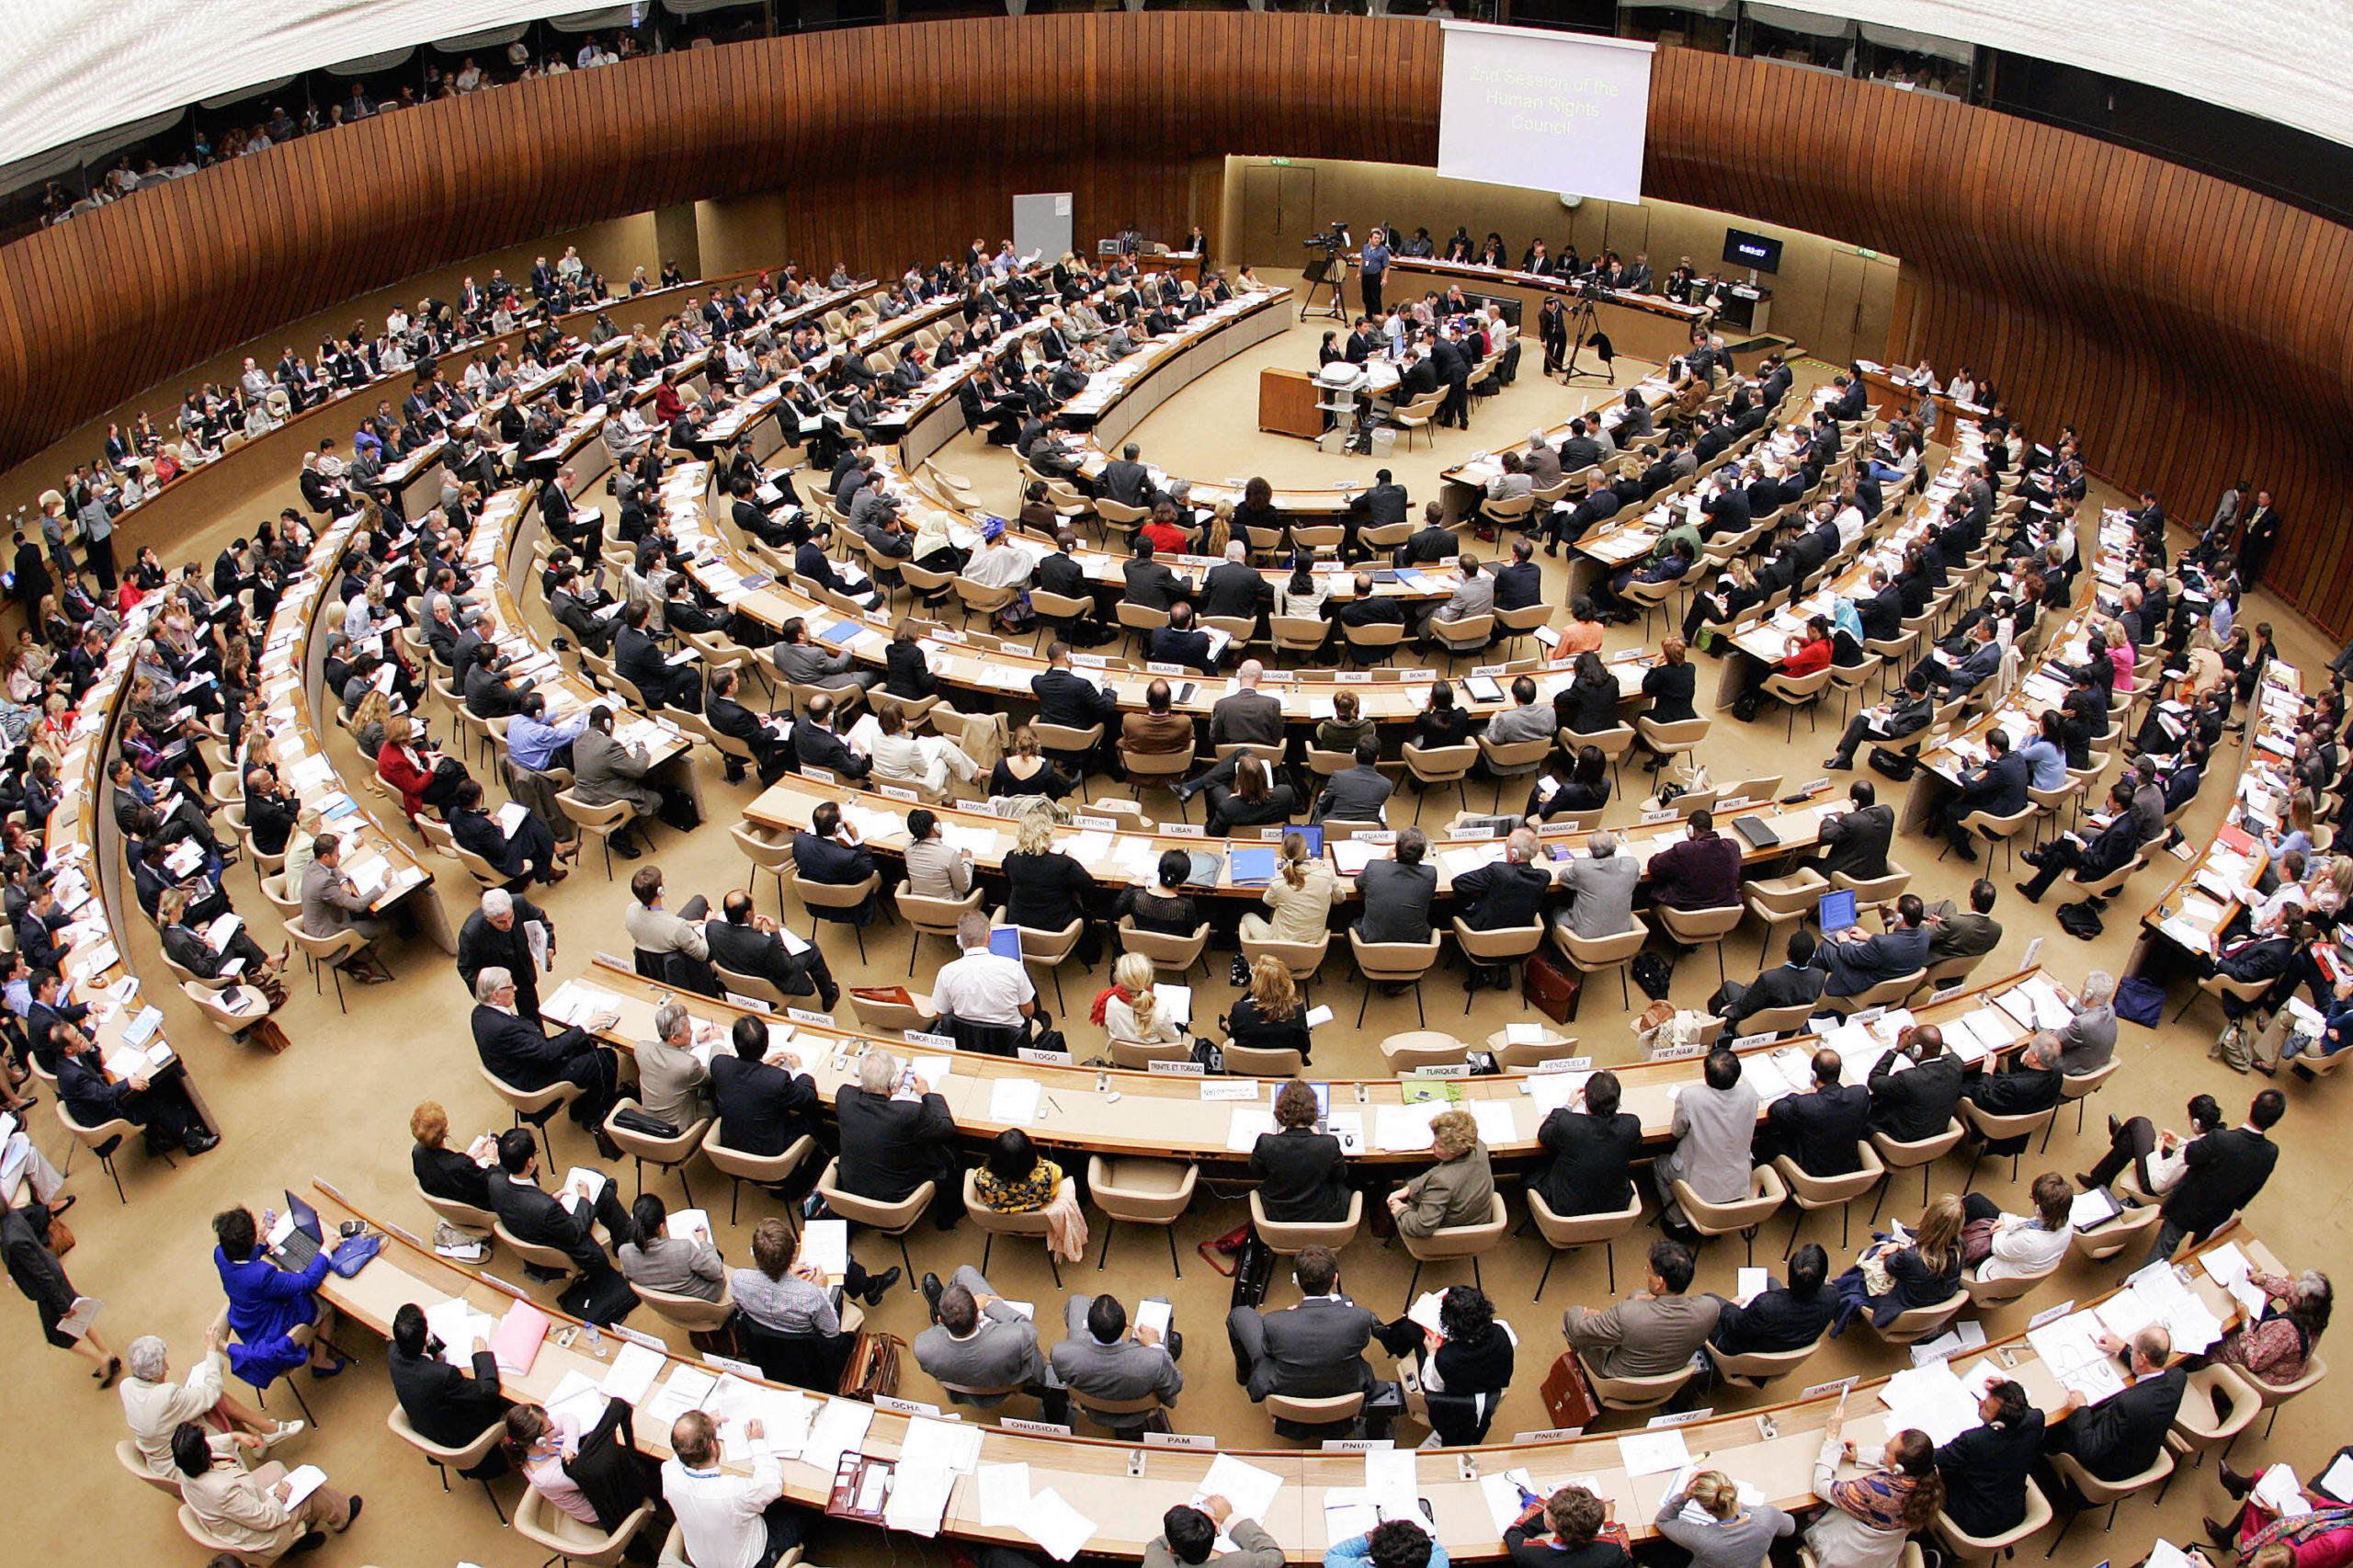 The Human Rights Council is seen holding a meeting in the United Nations office in Geneva, Switzerland. (Fabrice Coffrini/AFP via Getty Images)